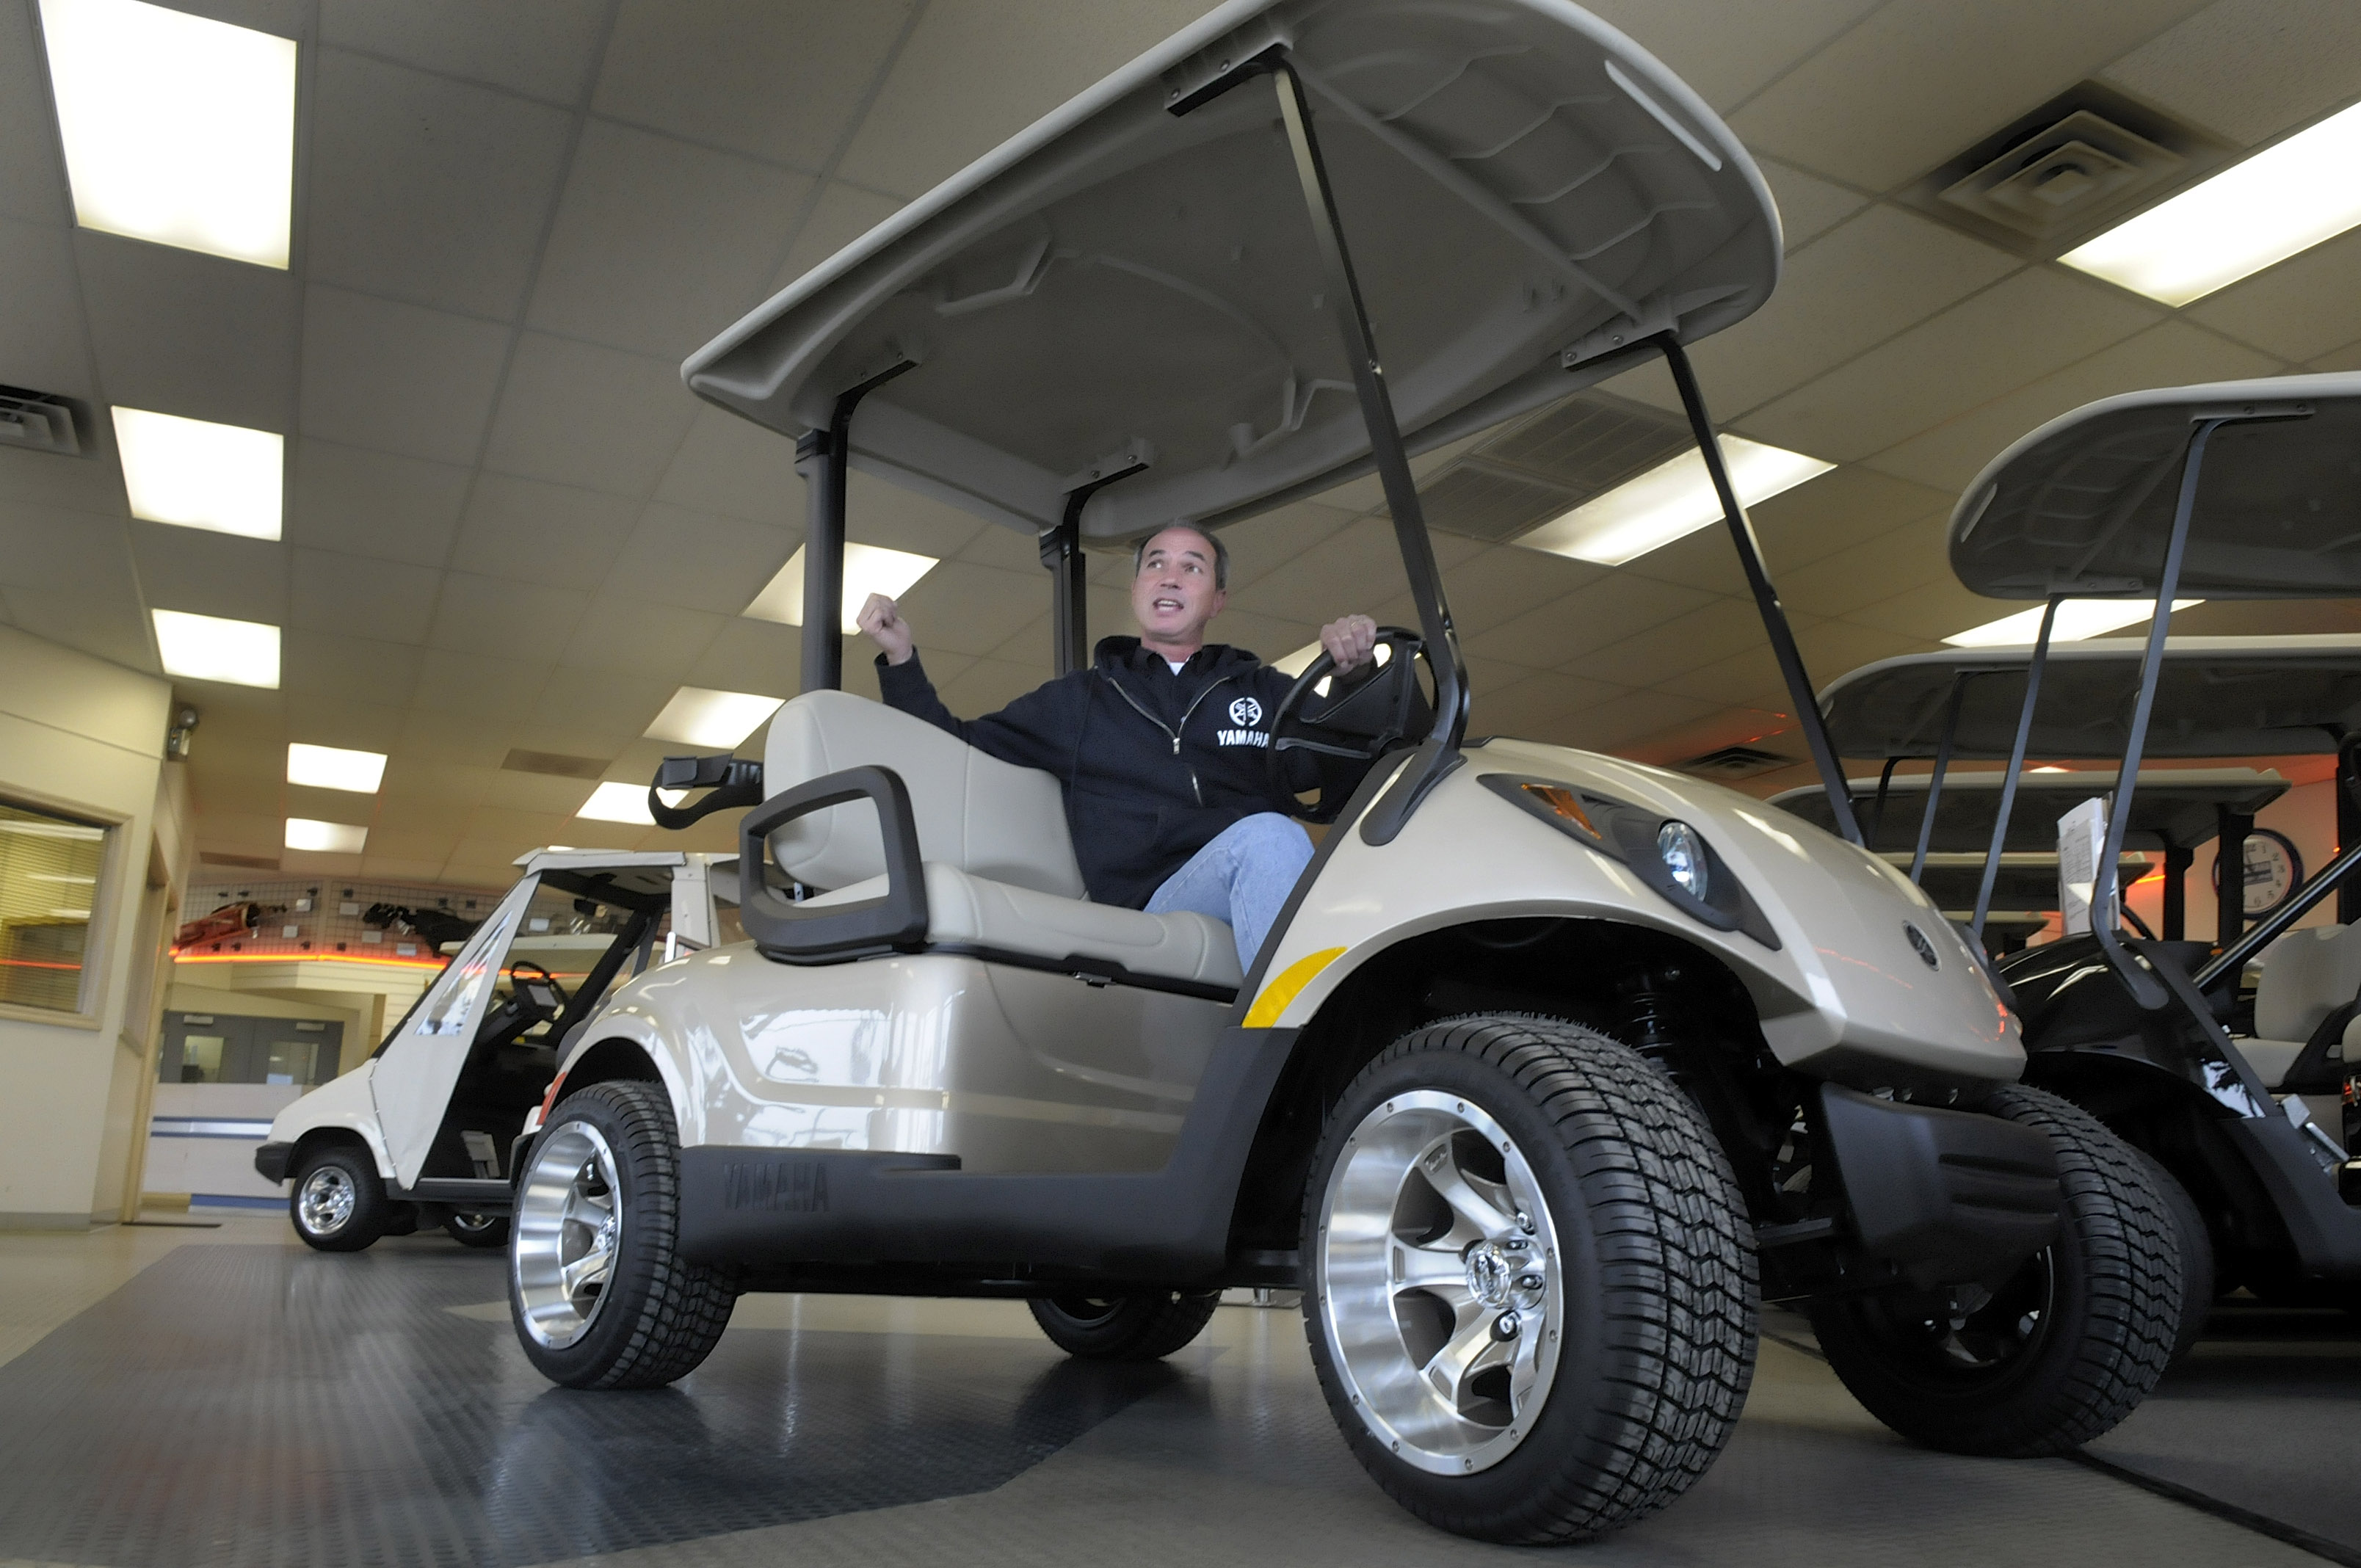 Remy Osso Of Northwest Golf Cars Explains The Benefits Owning A Road Legal Electric